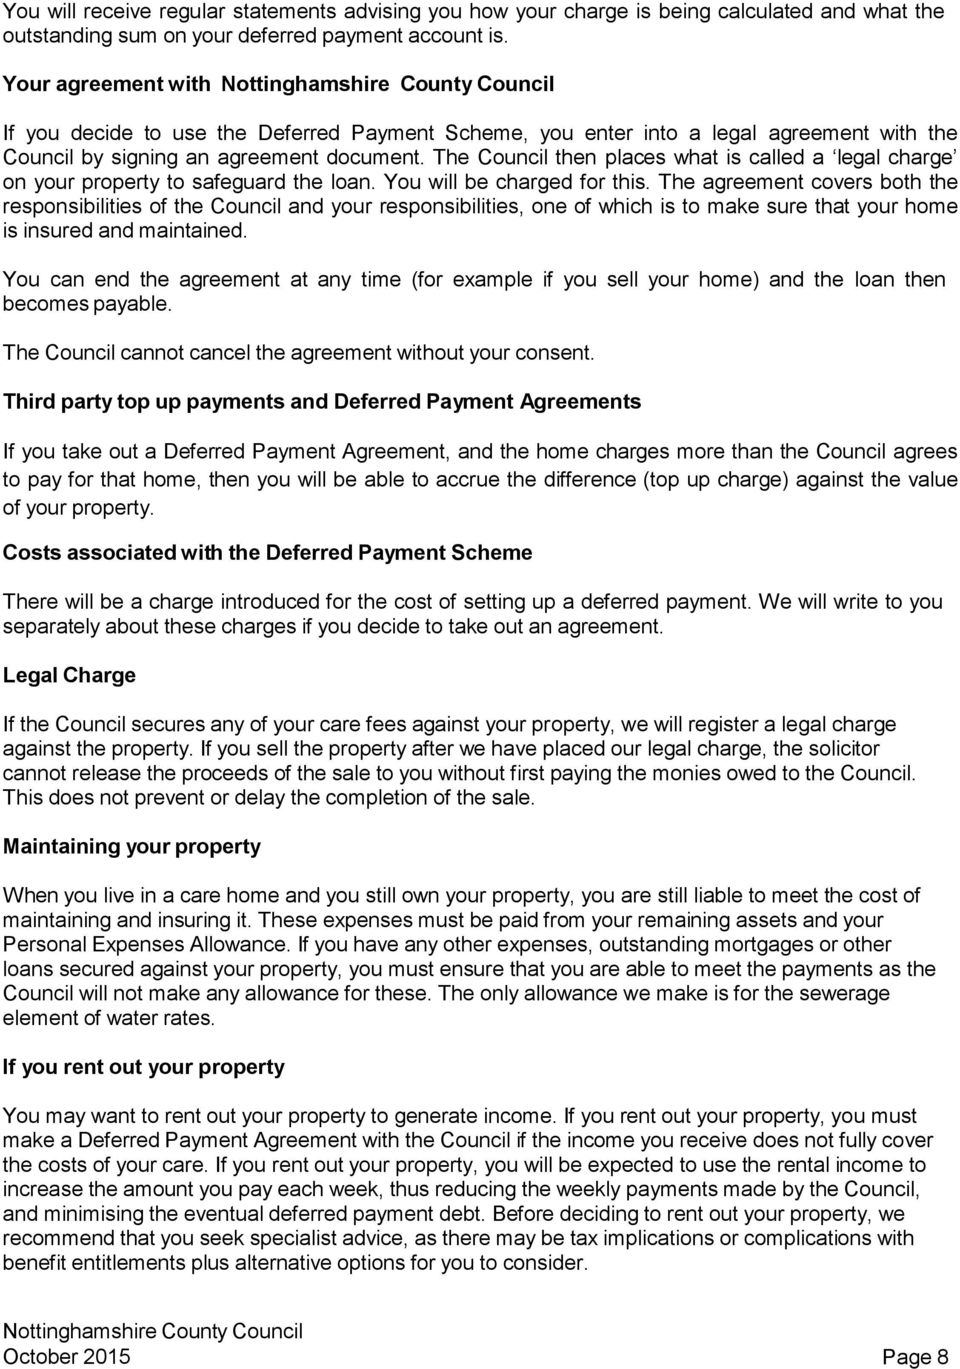 The Council then places what is called a legal charge on your property to safeguard the loan. You will be charged for this.